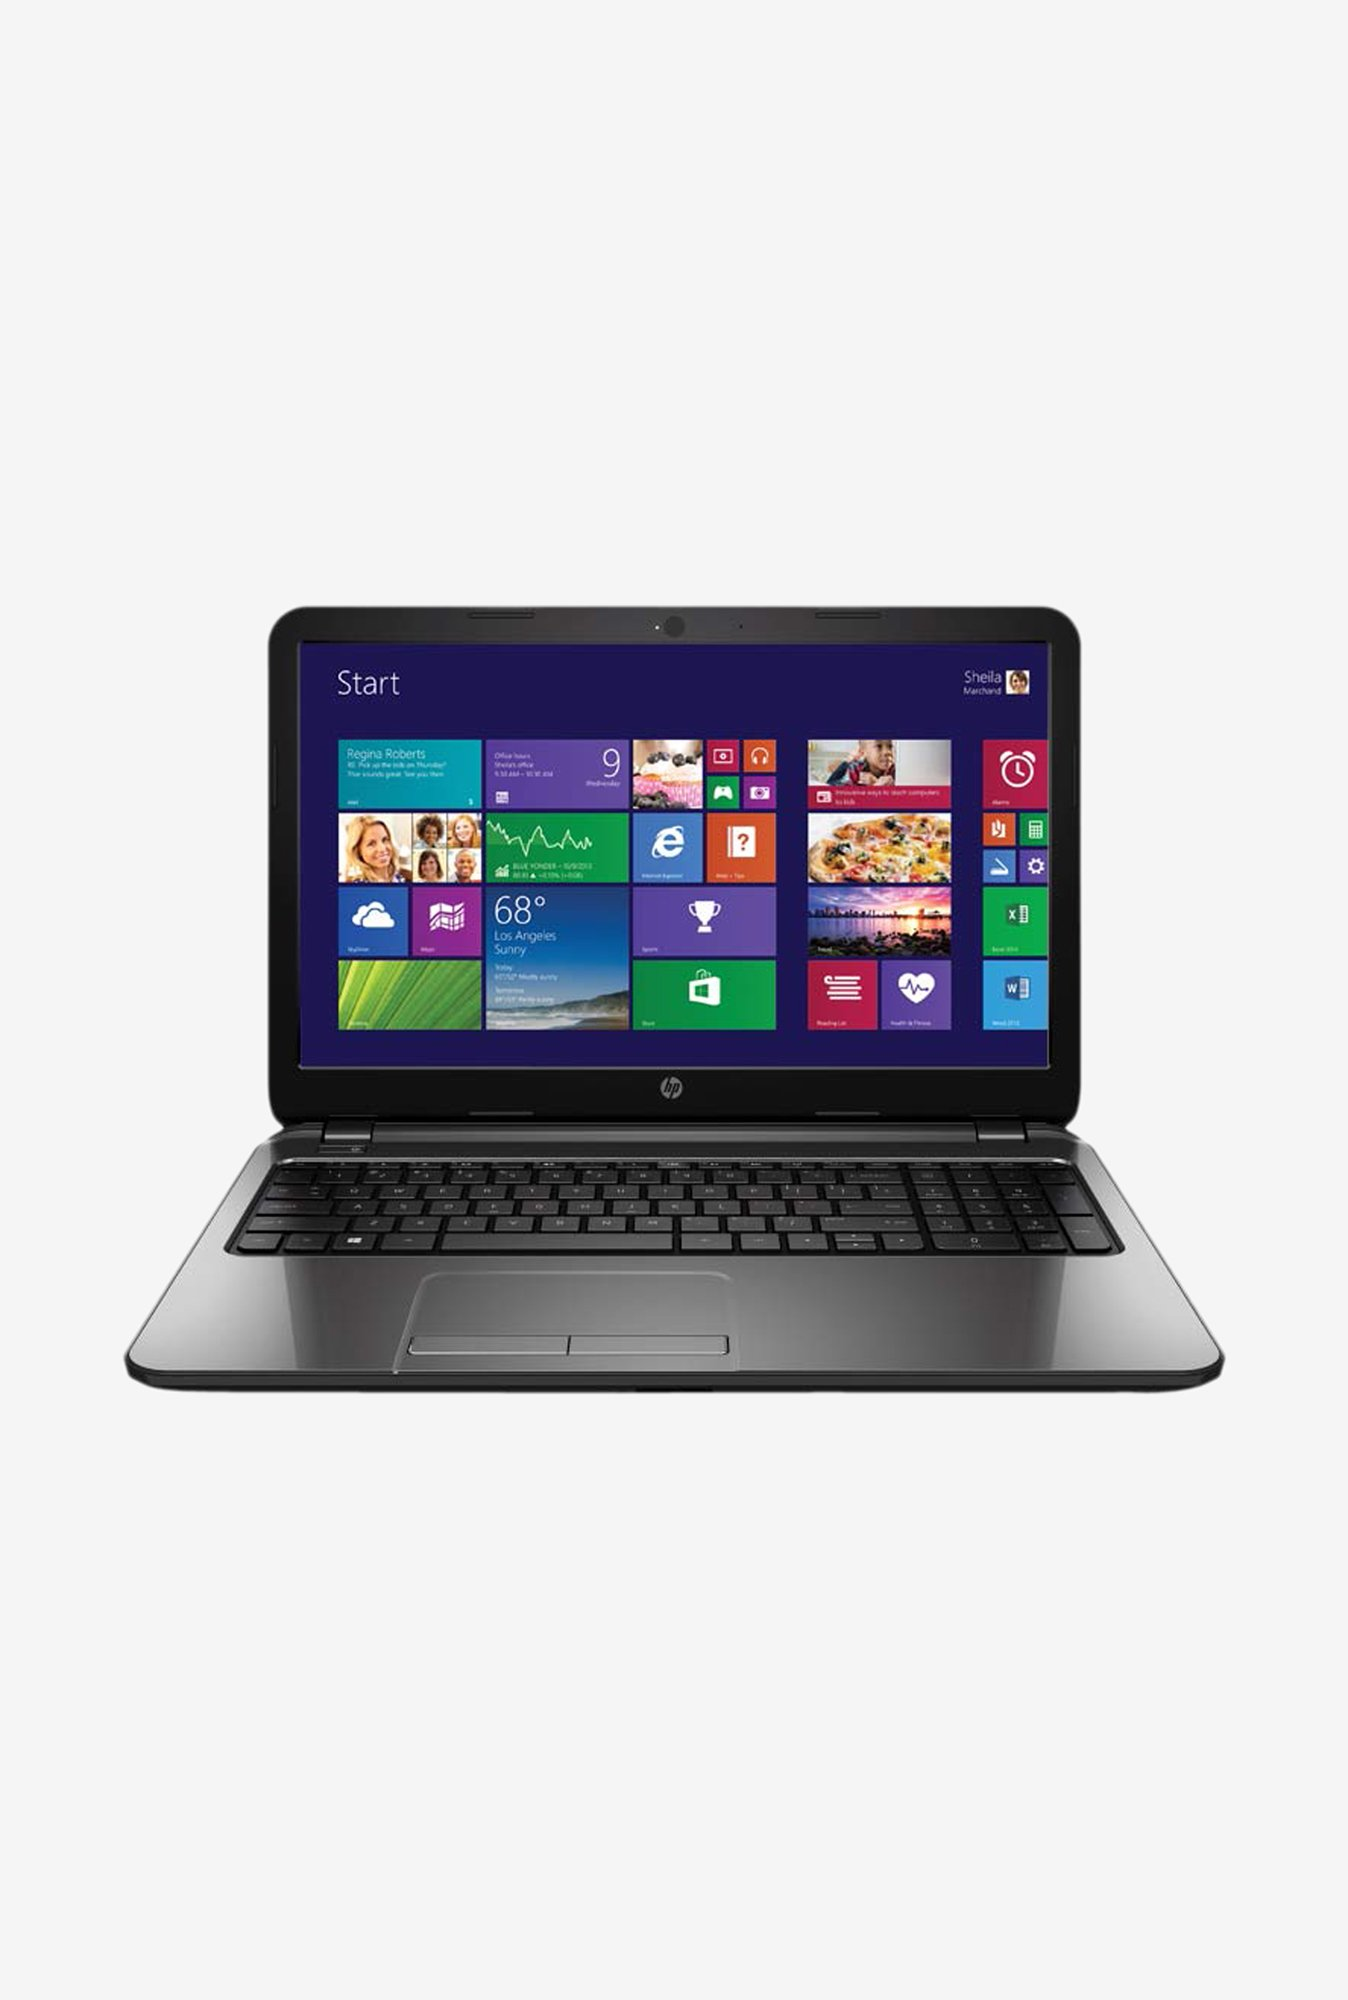 HP Pavilion 15-G004AU 39.62cm Laptop (AMD E1, 500GB) Black